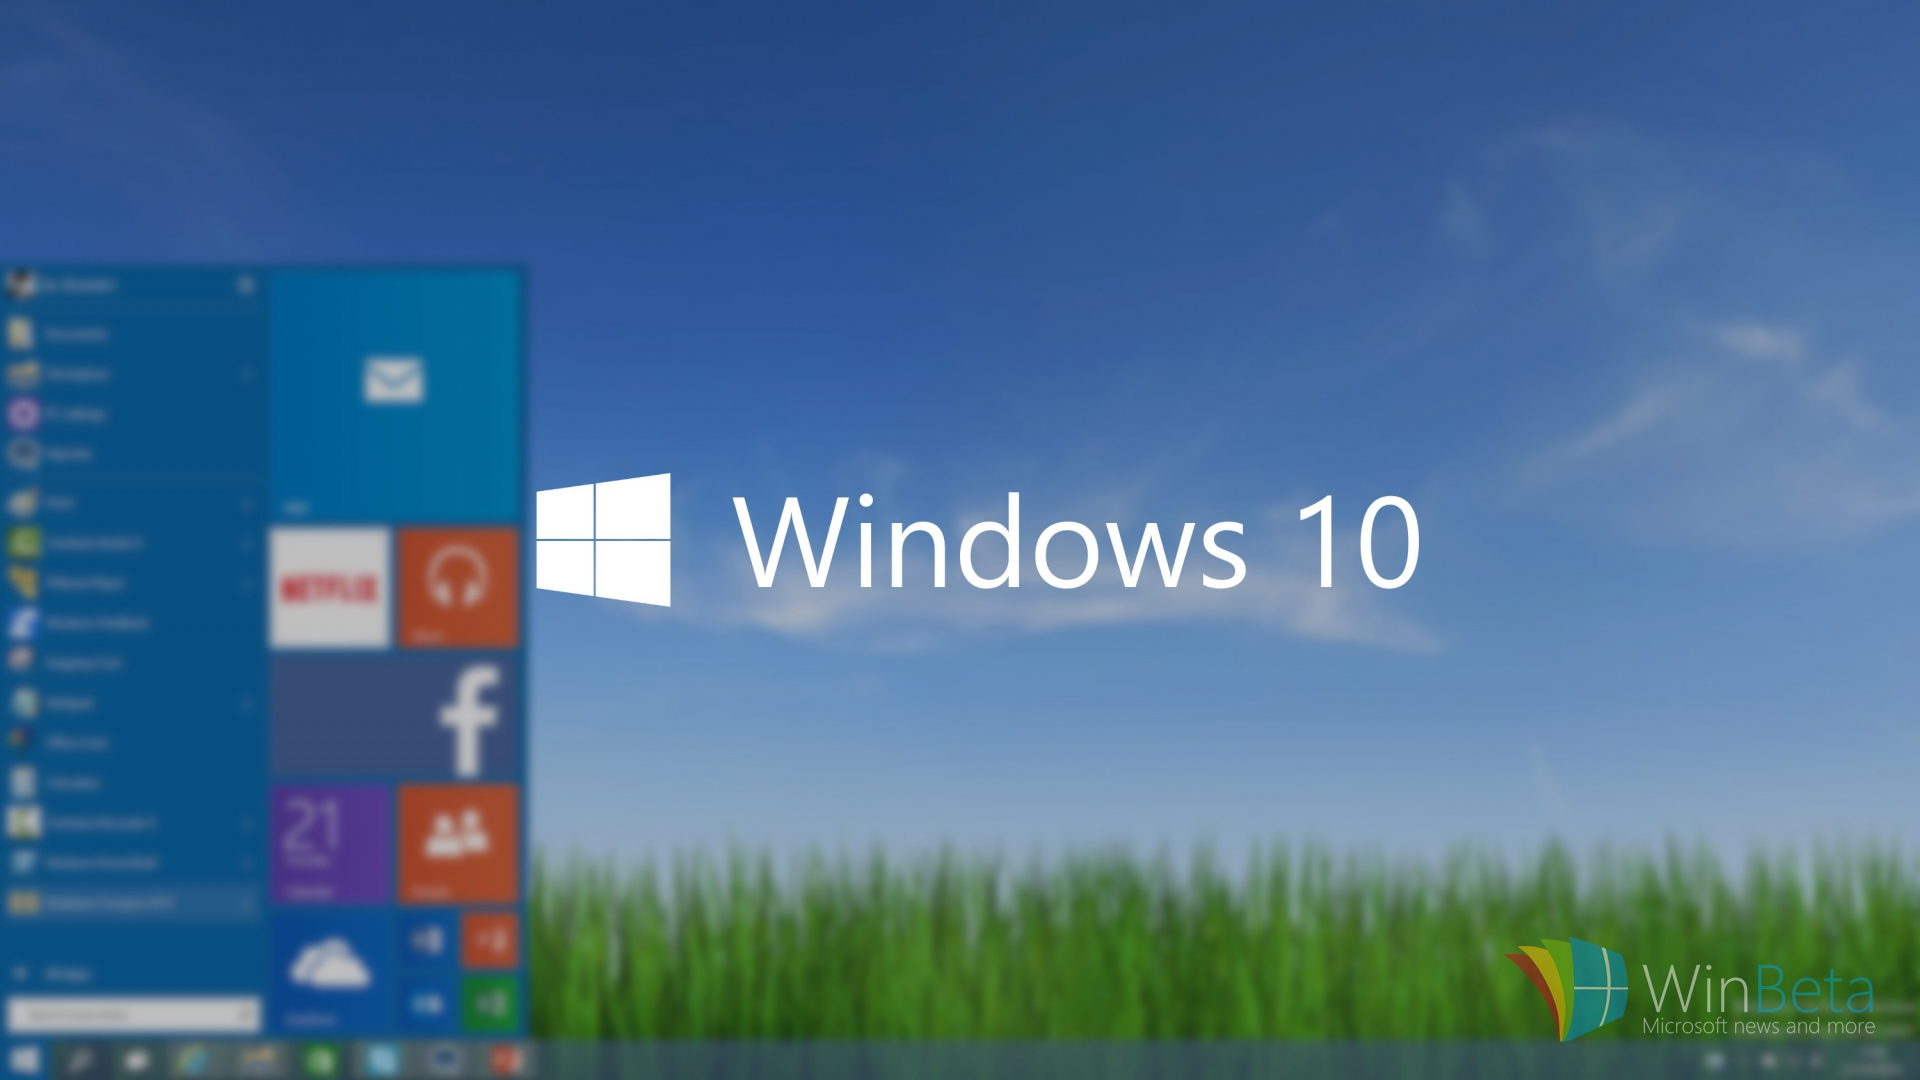 Microsoft to roll out Windows 10 on July, 29th